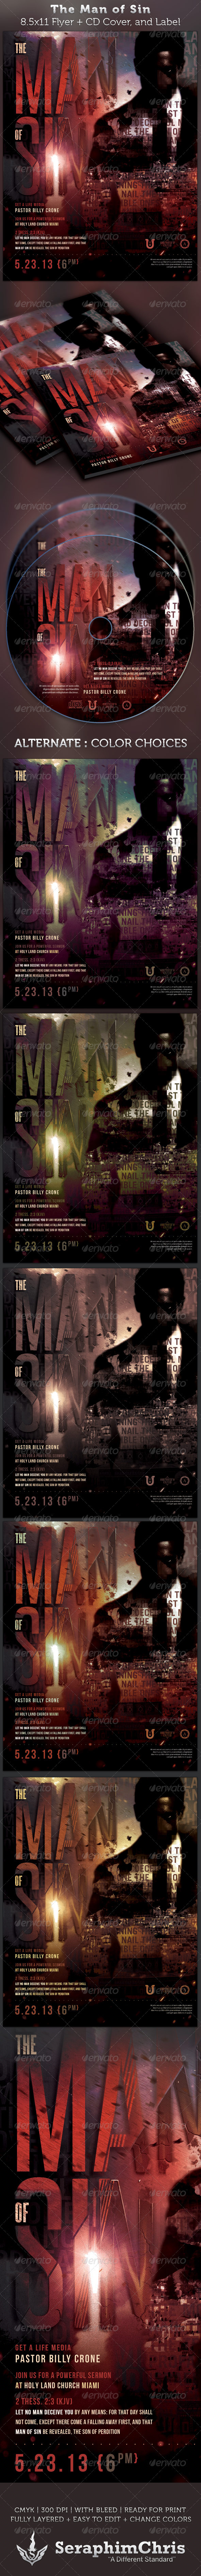 The Man of Sin Full Page Flyer and CD Cover - Church Flyers